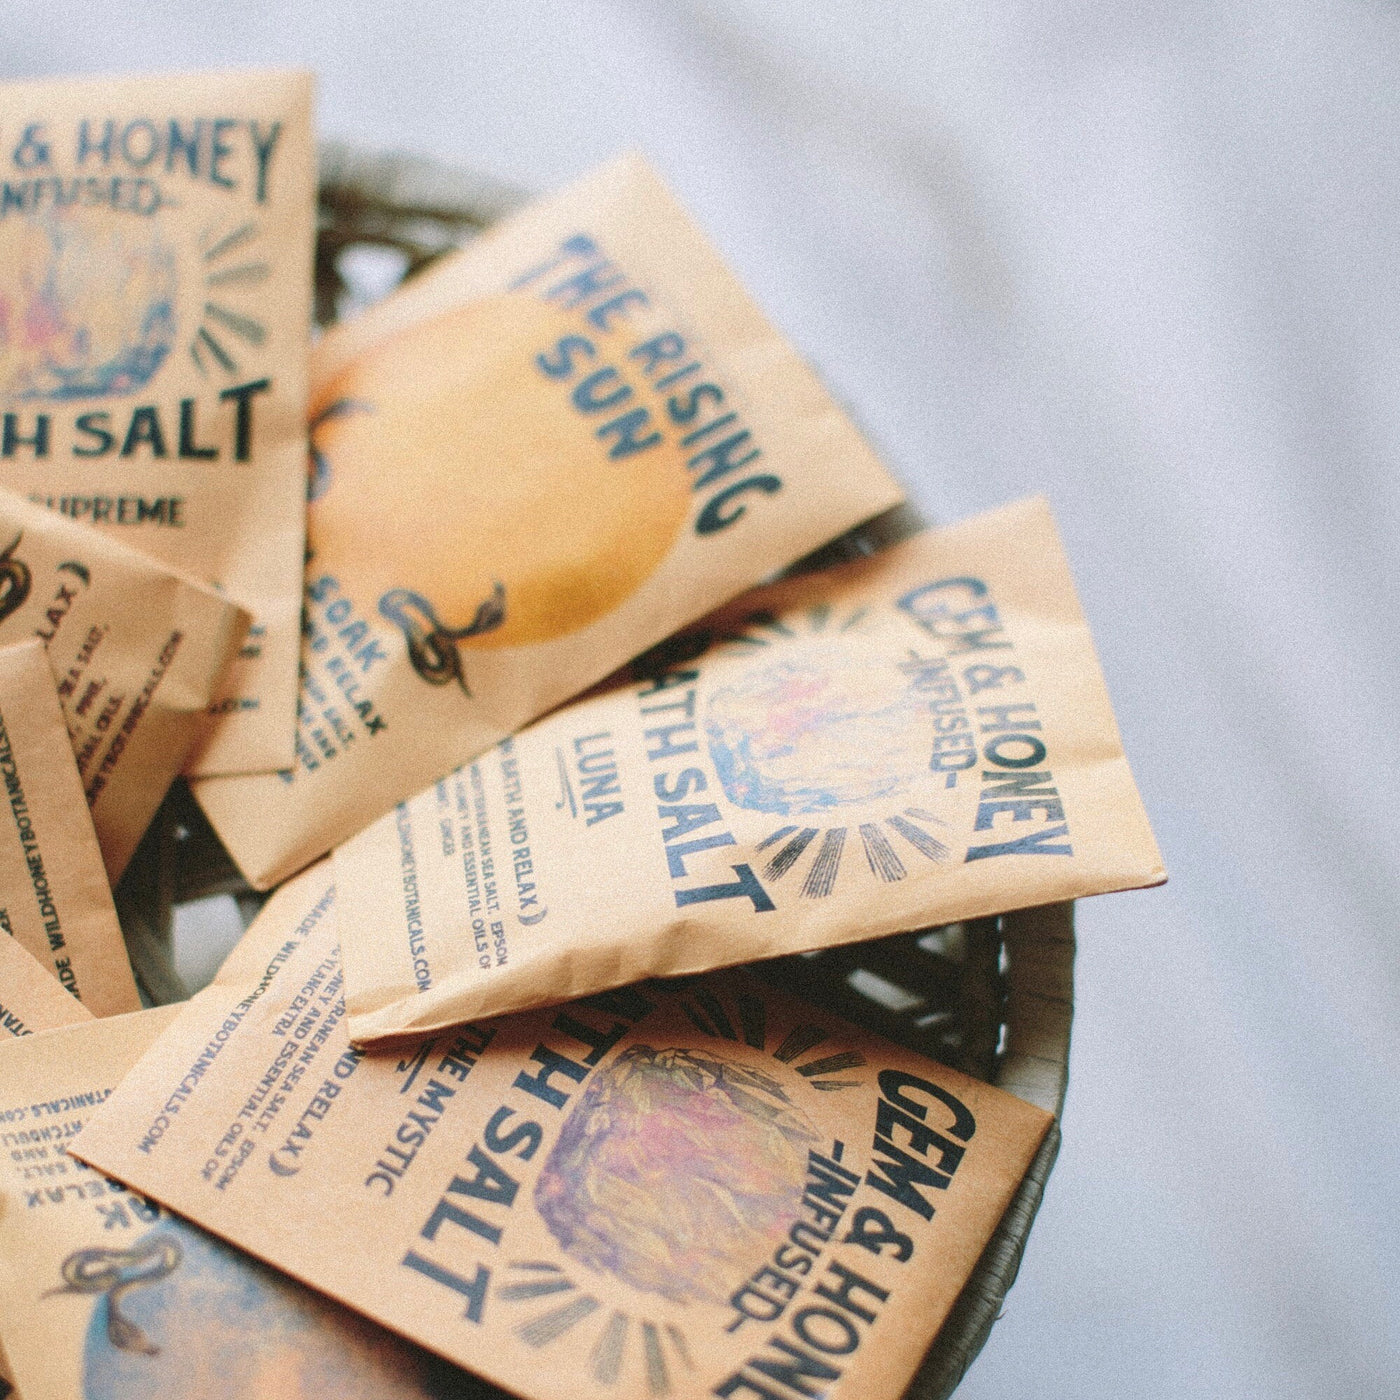 Wild Yonder Botanicals: Gem Honey Infused Bath Soak Packets